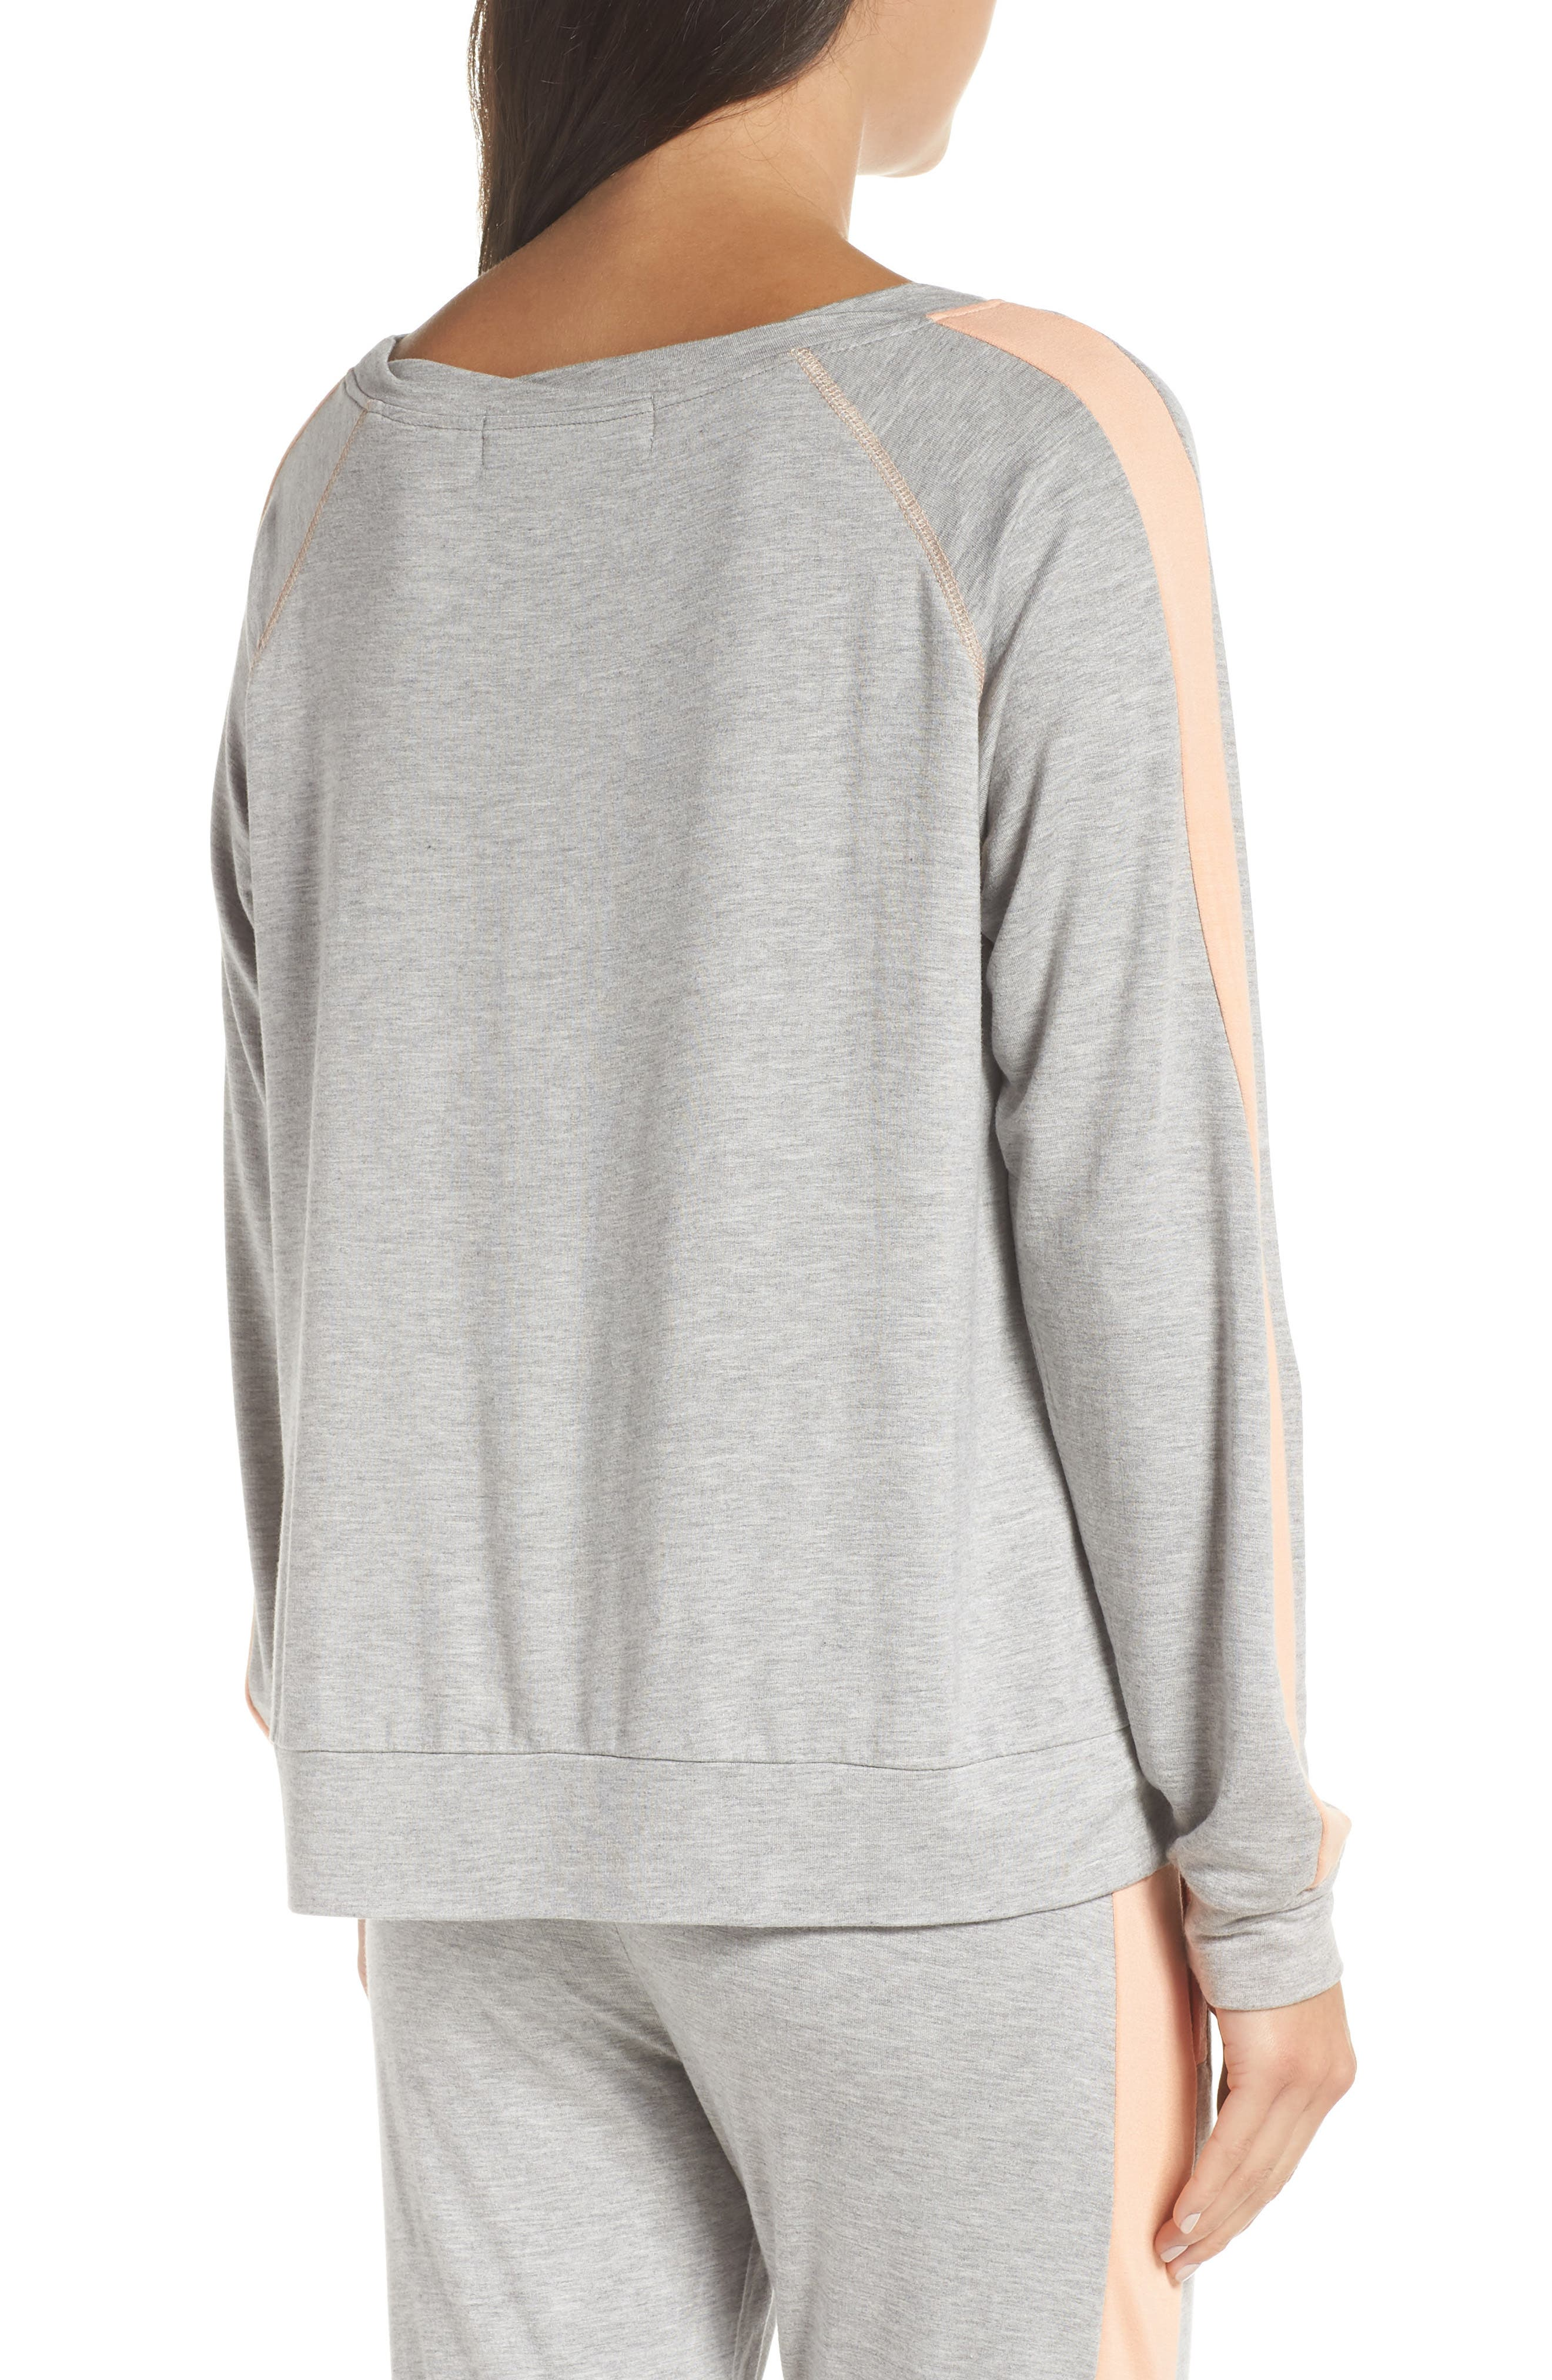 Elevens Sweatshirt,                             Alternate thumbnail 2, color,                             HEATHER / PEACH